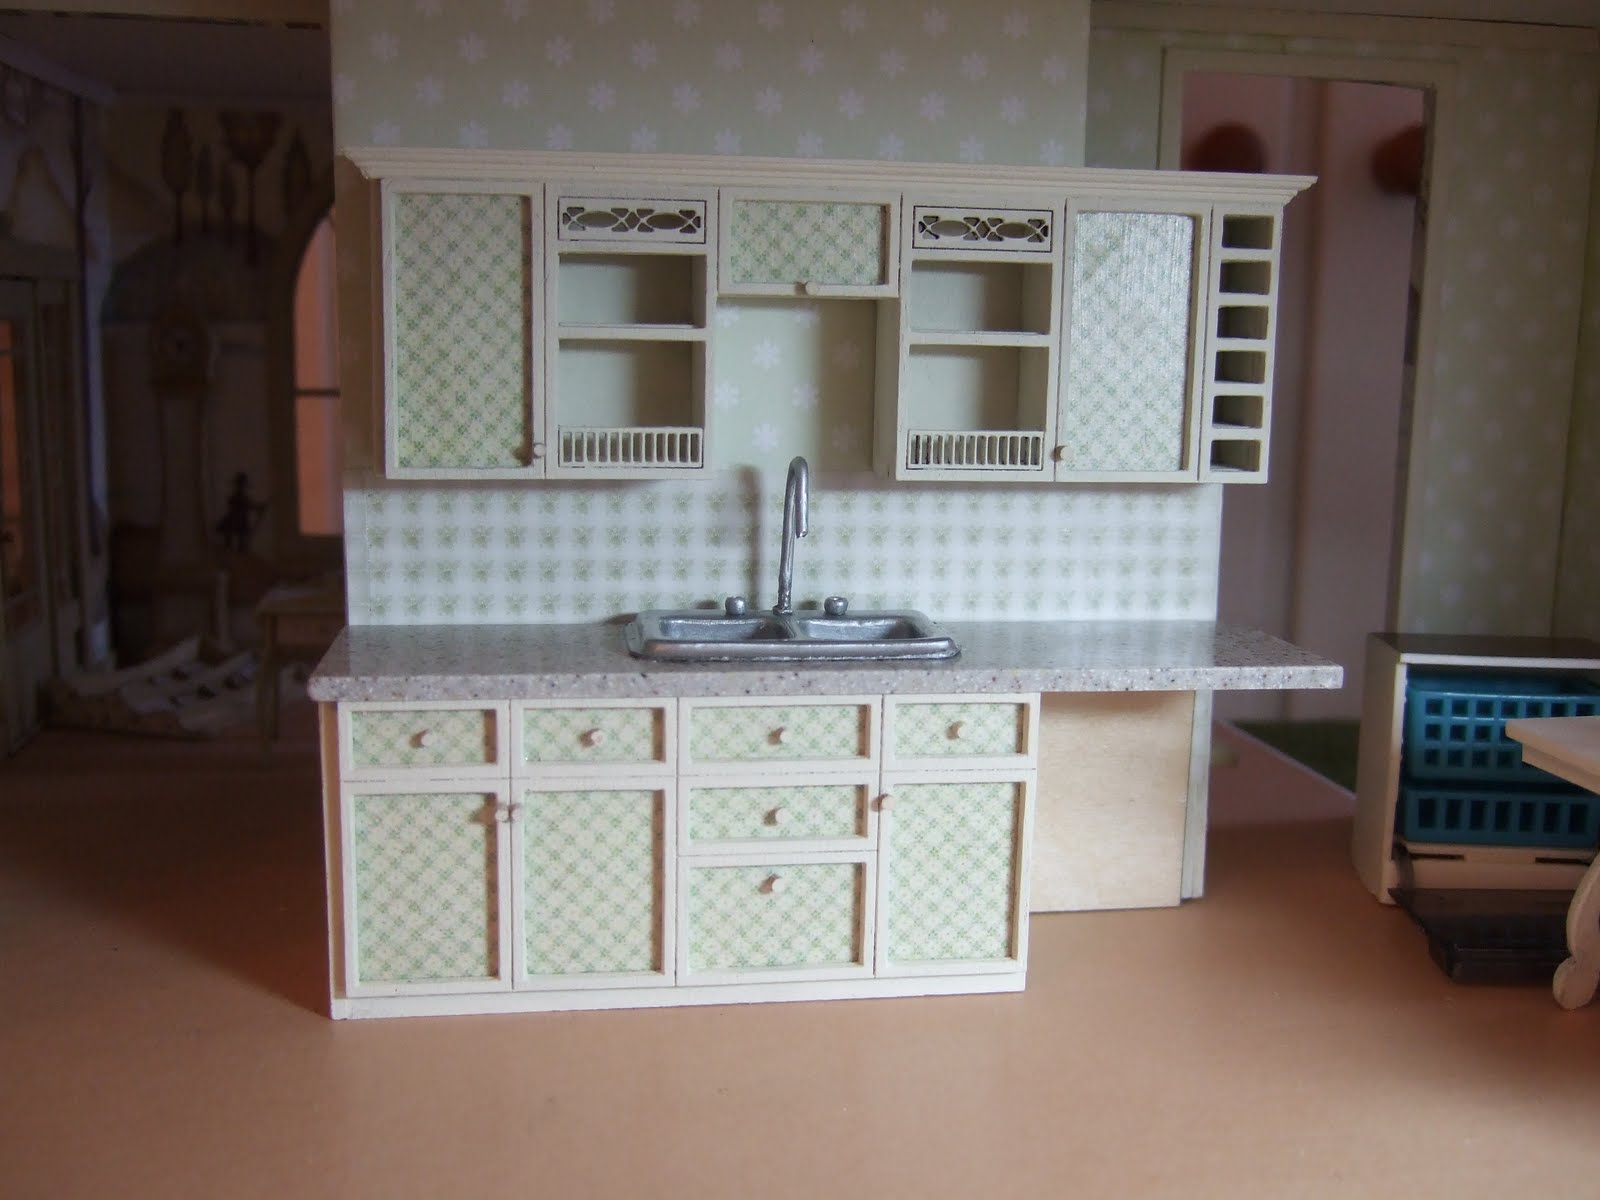 A Greenleaf Fairfield for Miss Lydia Pickett: Cabinets installed